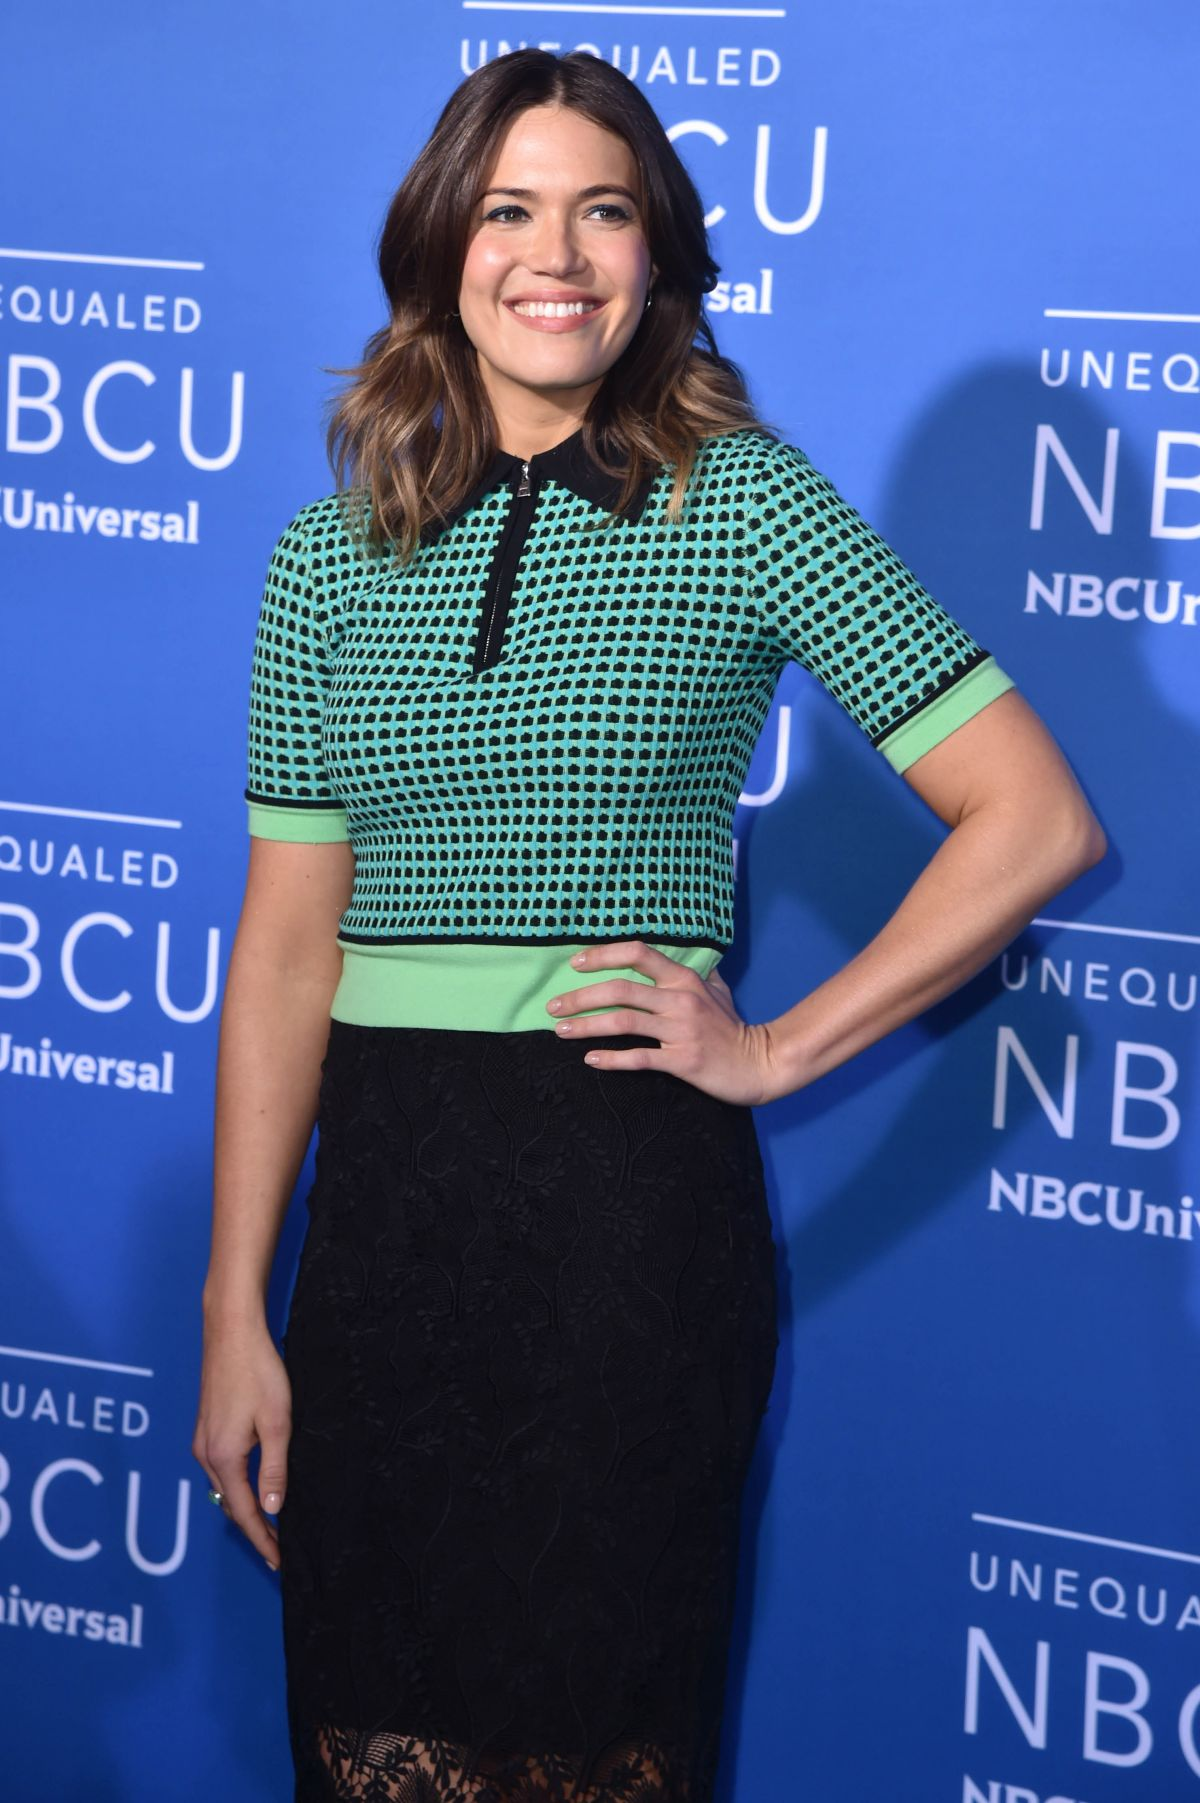 Mandy Moore At NBCUniversal Upfront in New York City   mandy-moore-at-nbcuniversal-upfront-in-new-york-city_4